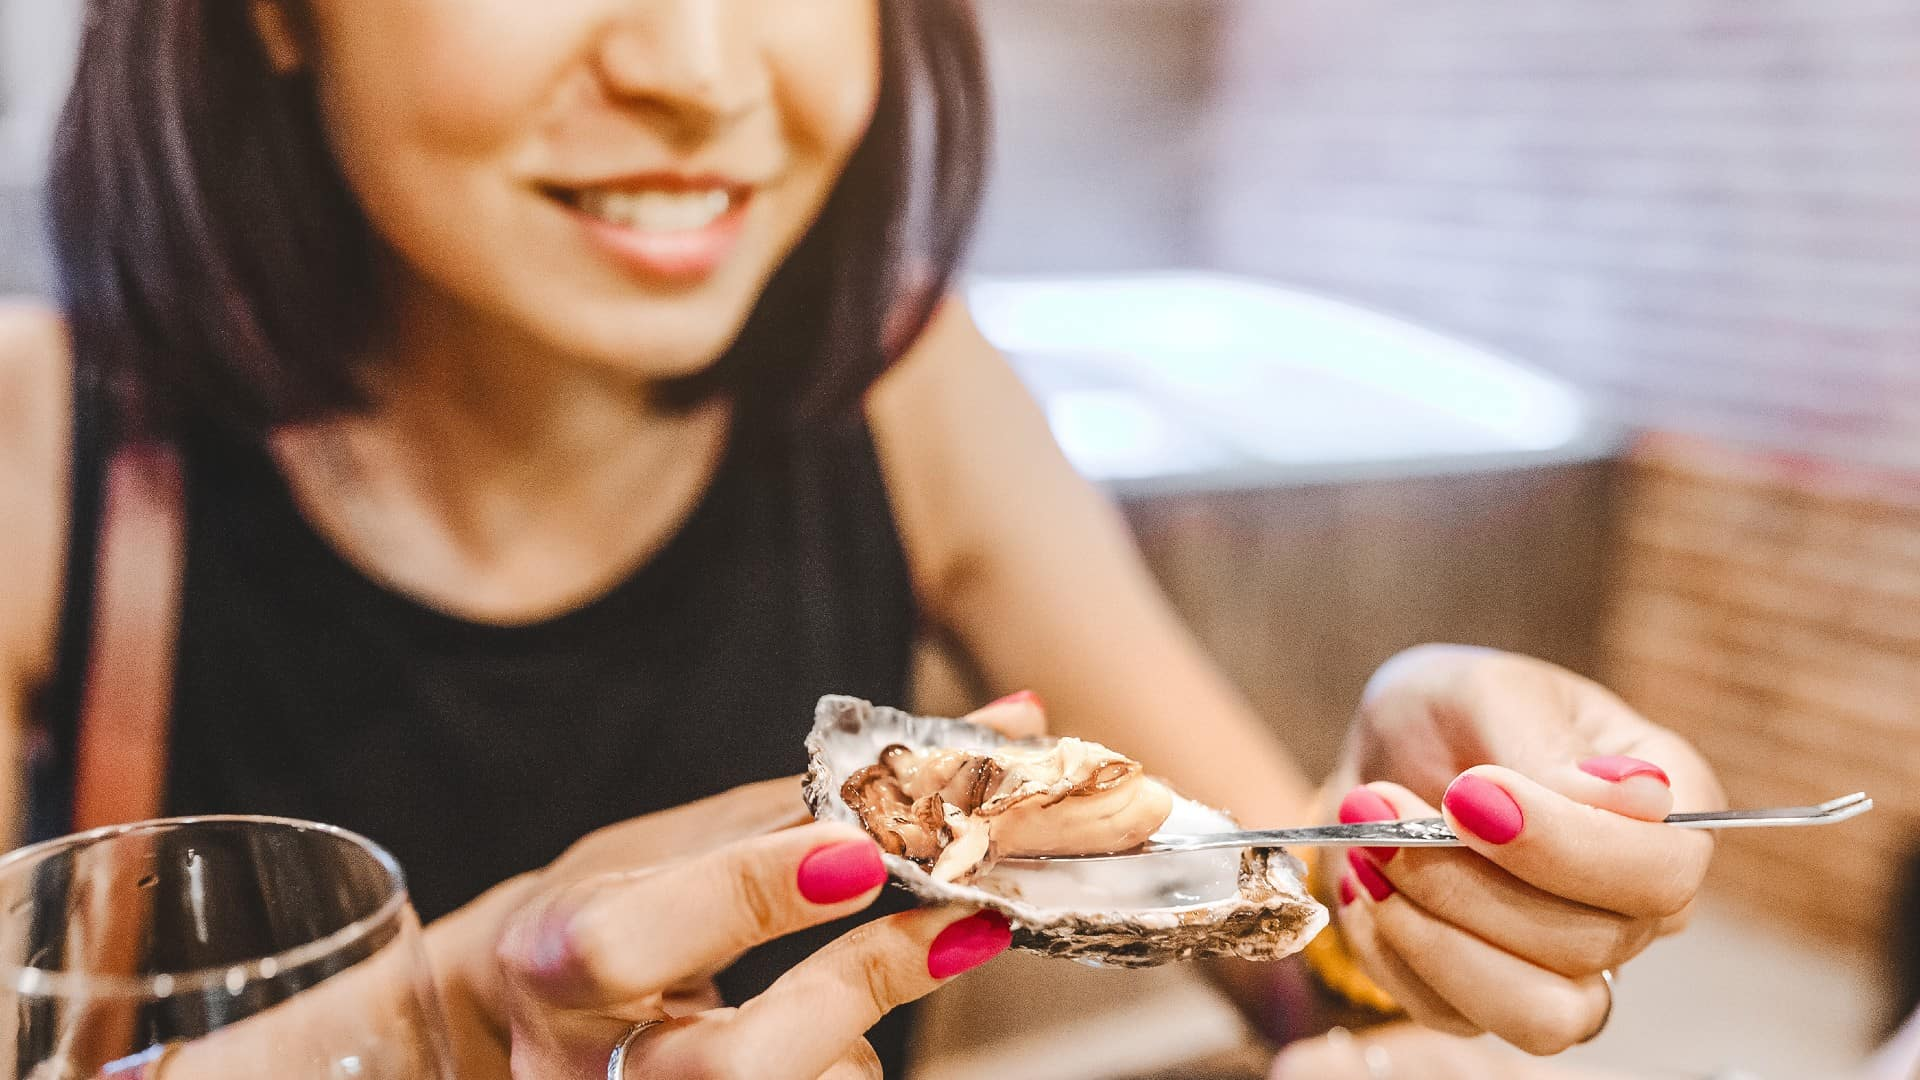 A smiling woman tucks into a fresh rock oyster, indicating a positive share price